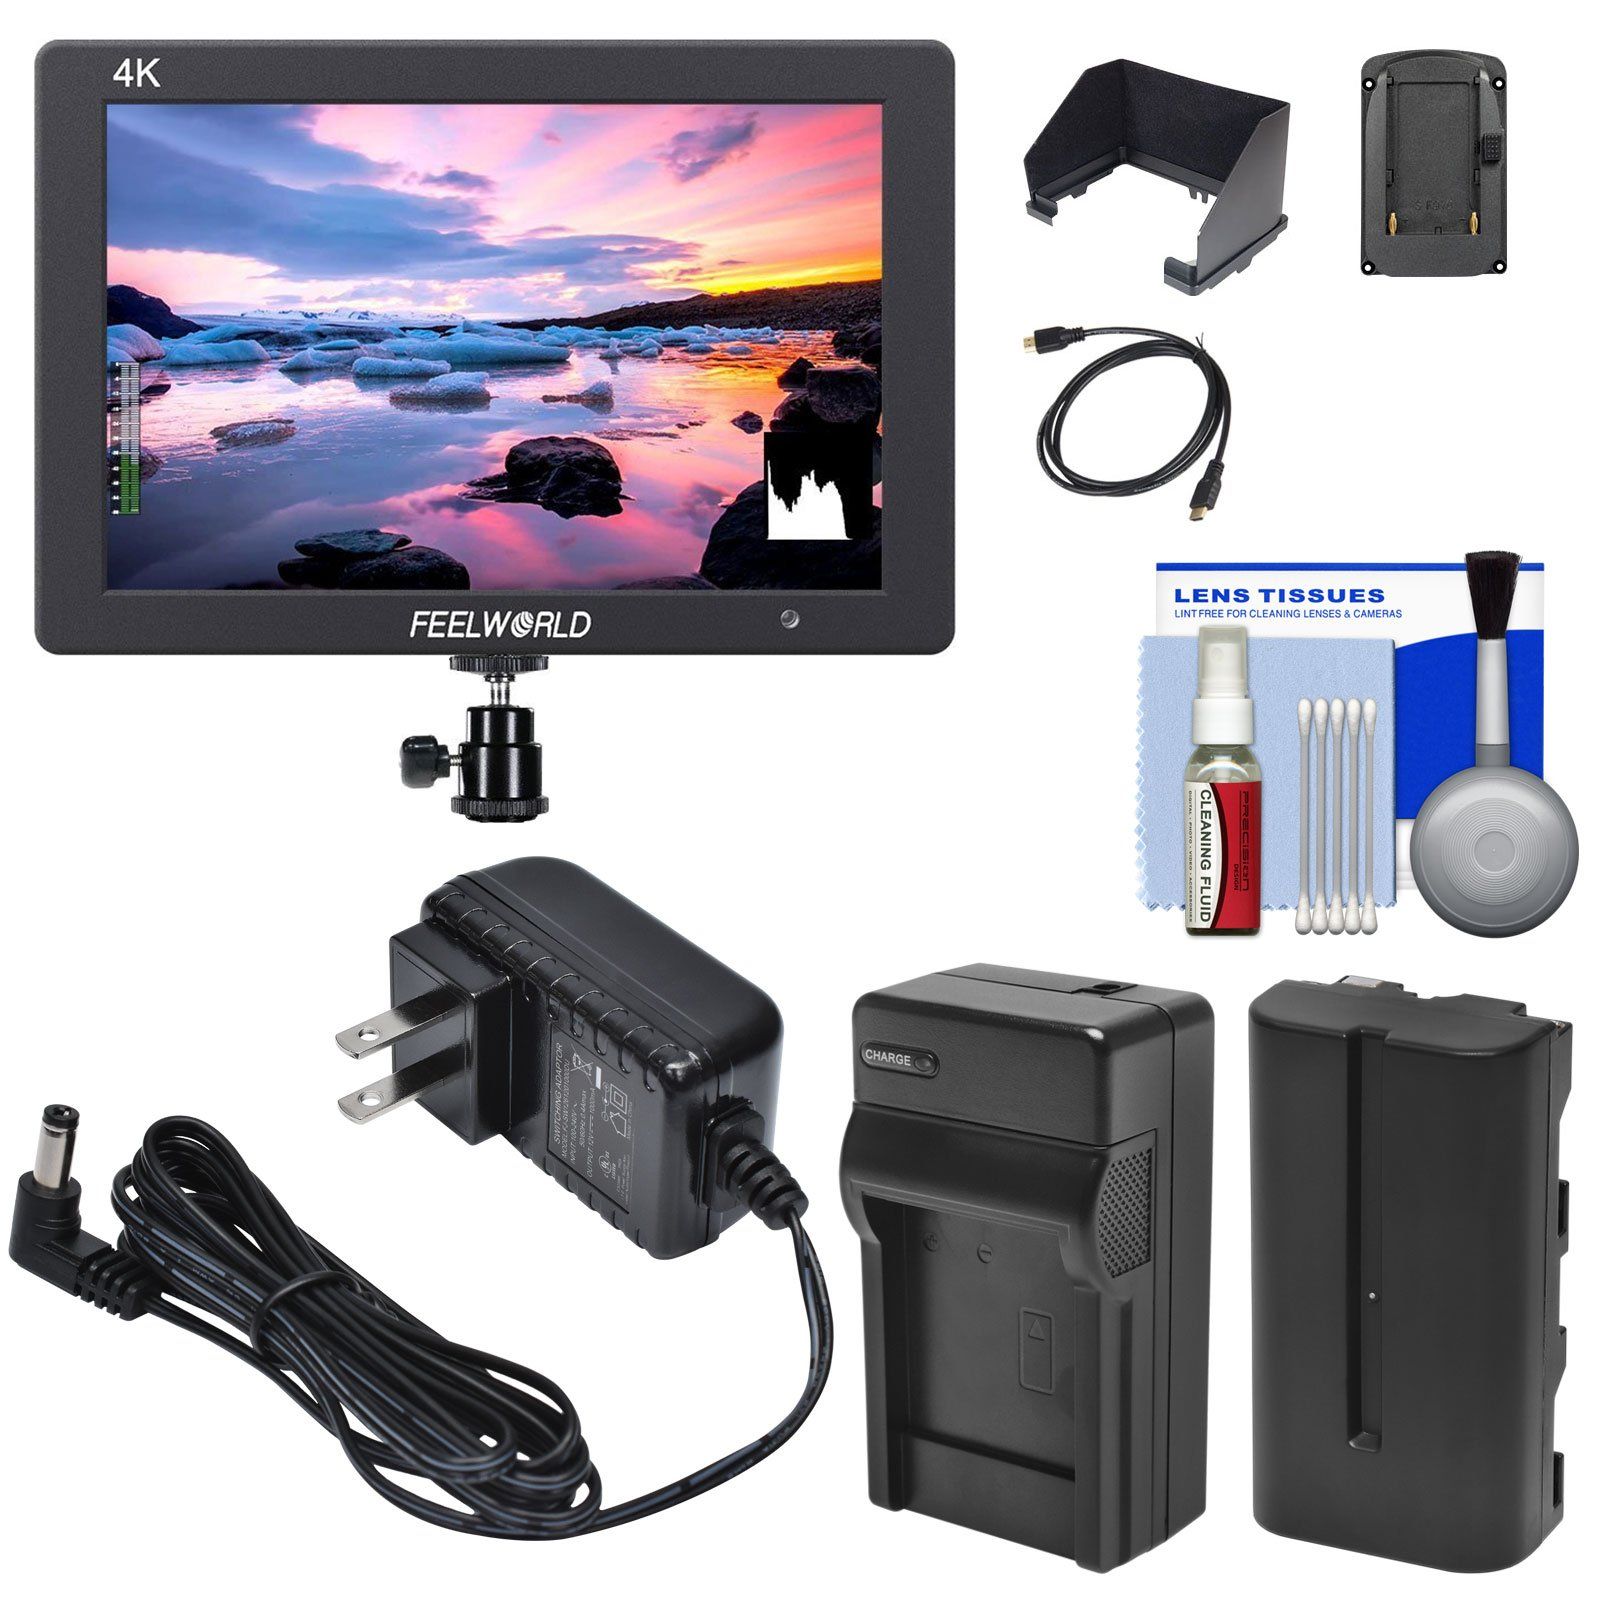 Feelworld T7 7-inch 4K 1920x1200 IPS On-Camera Field Monitor with Battery & Charger + AC Adapter + Sun Shade + HDMI Cable + Hot Shoe Mount + Kit by FEELWORLD